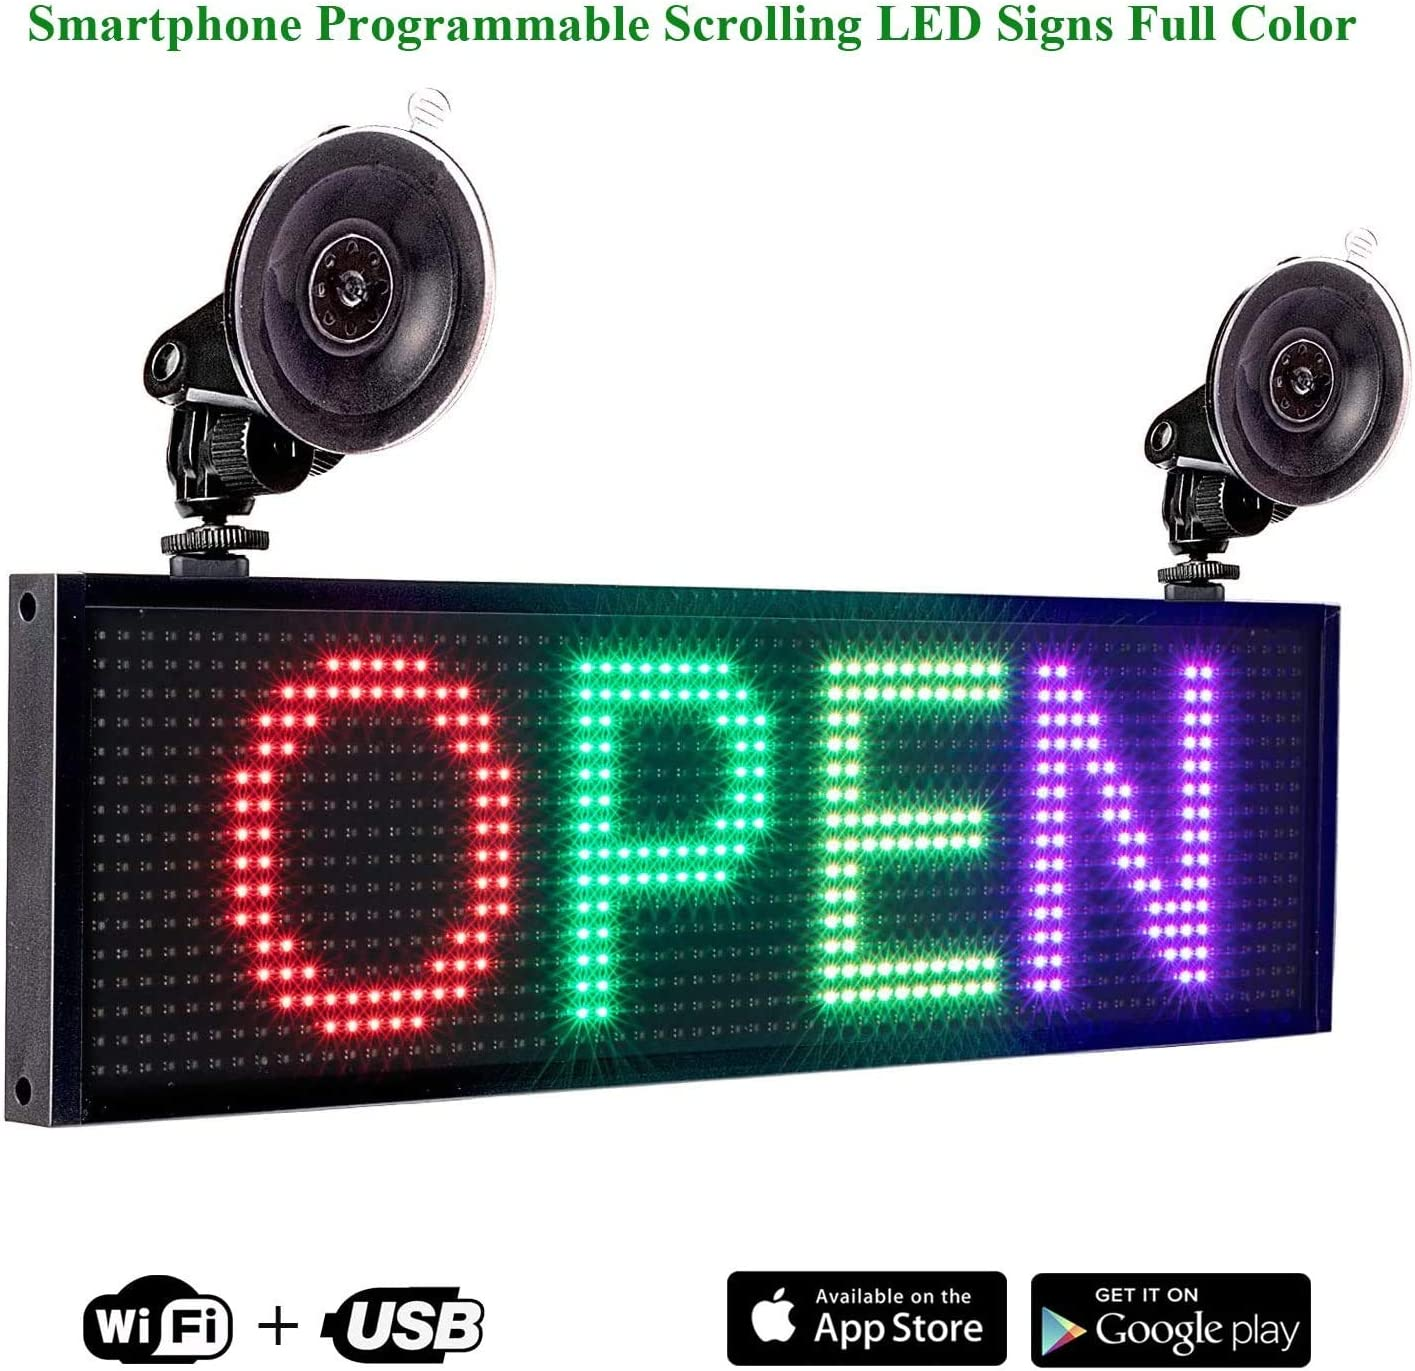 Ultra-thin LED Car Sign Programmable Scrolling Message Display Board With  //